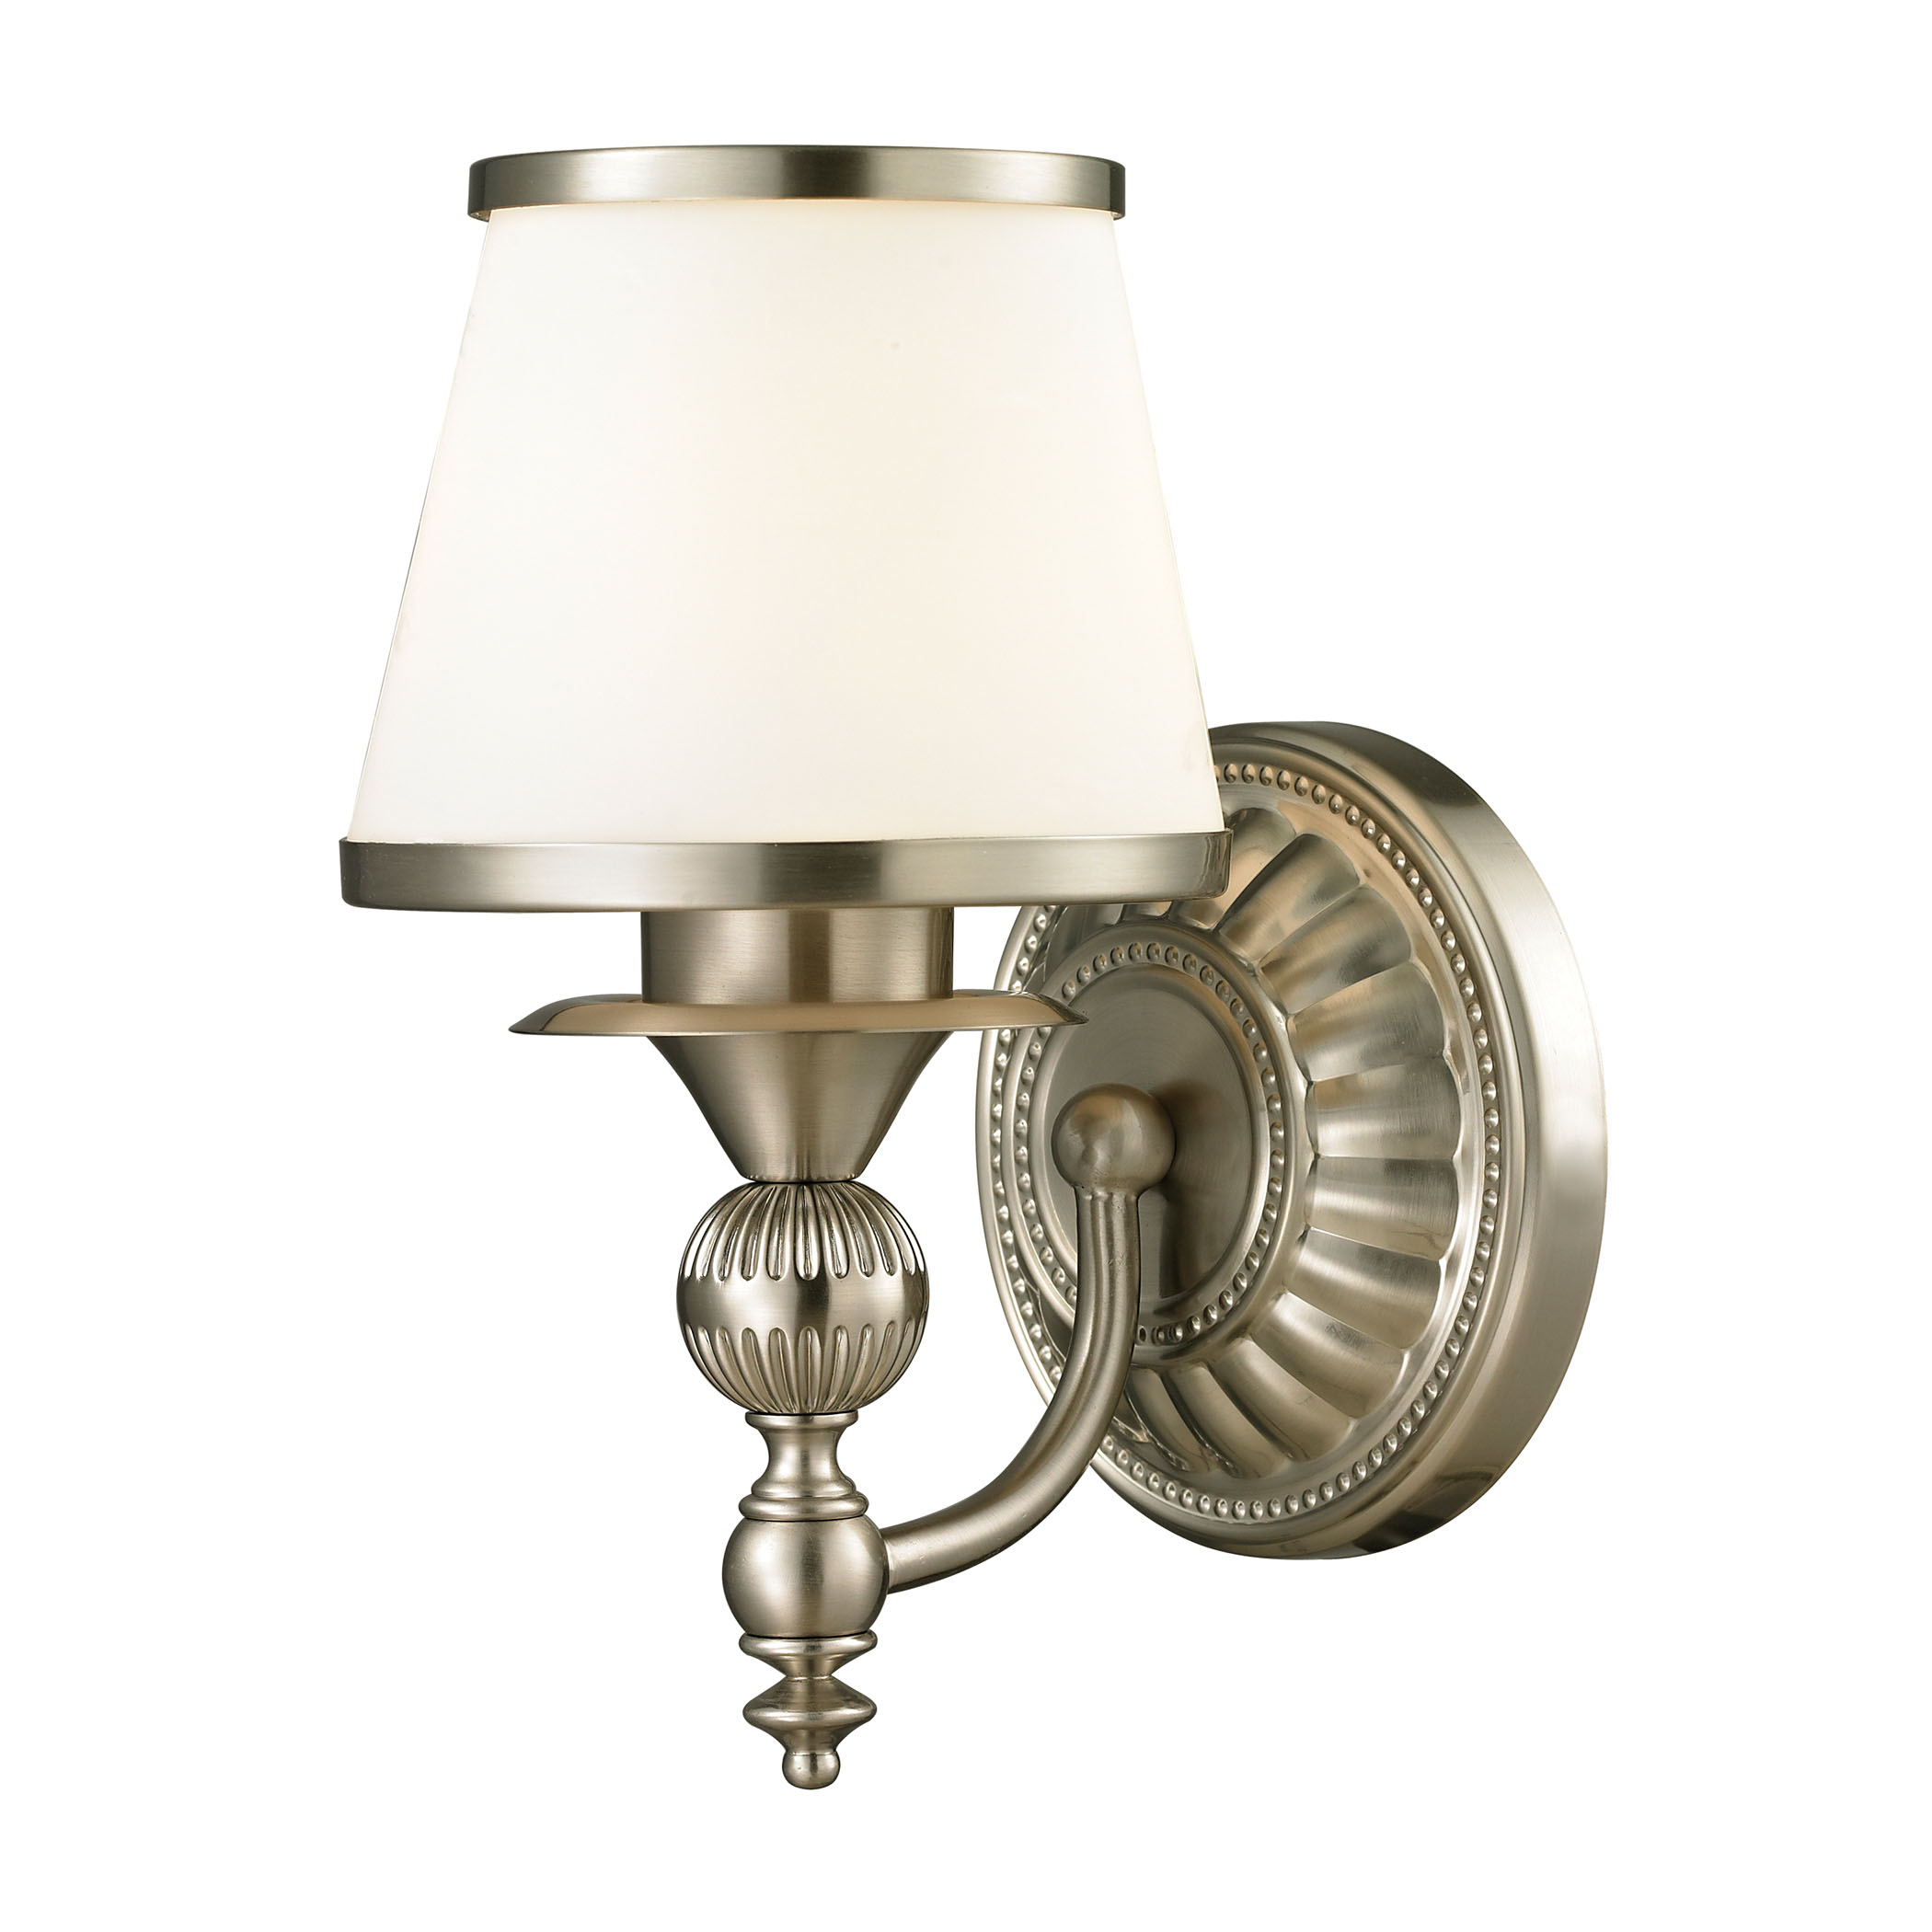 Smithfield Collection 1 Light Bath in Brushed Nickel